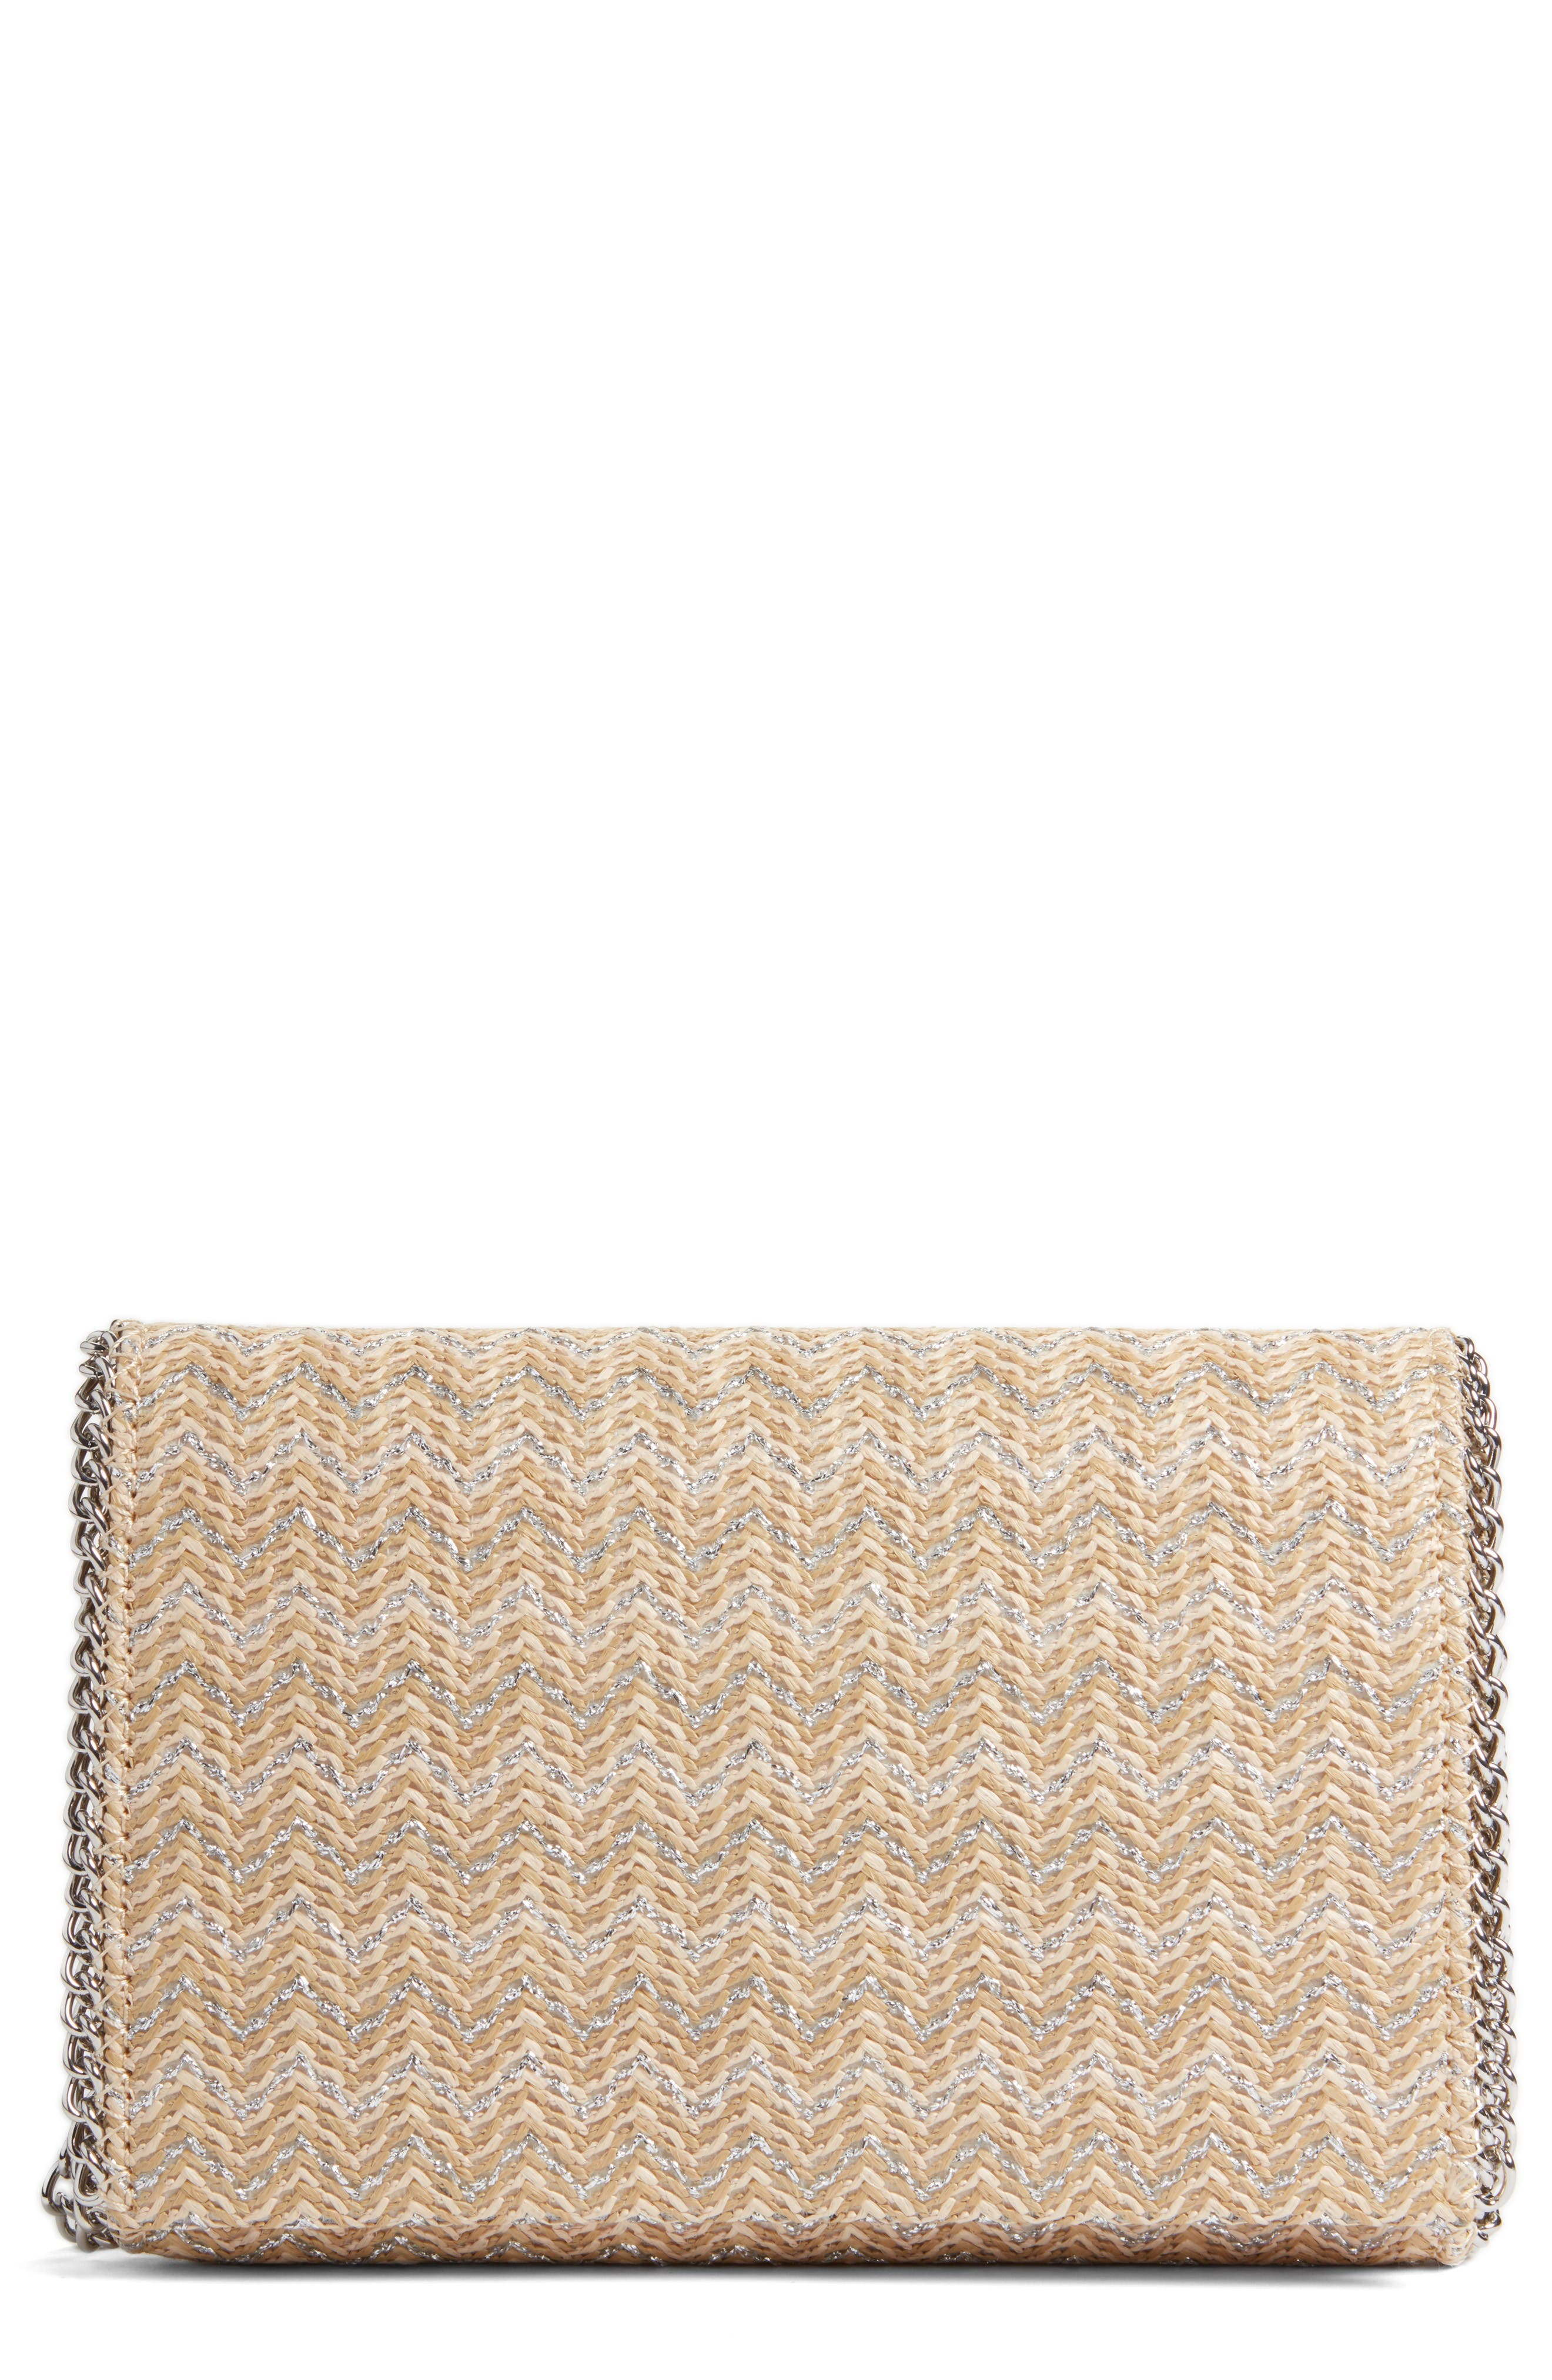 Main Image - Chelsea28 Stripe Straw Convertible Clutch